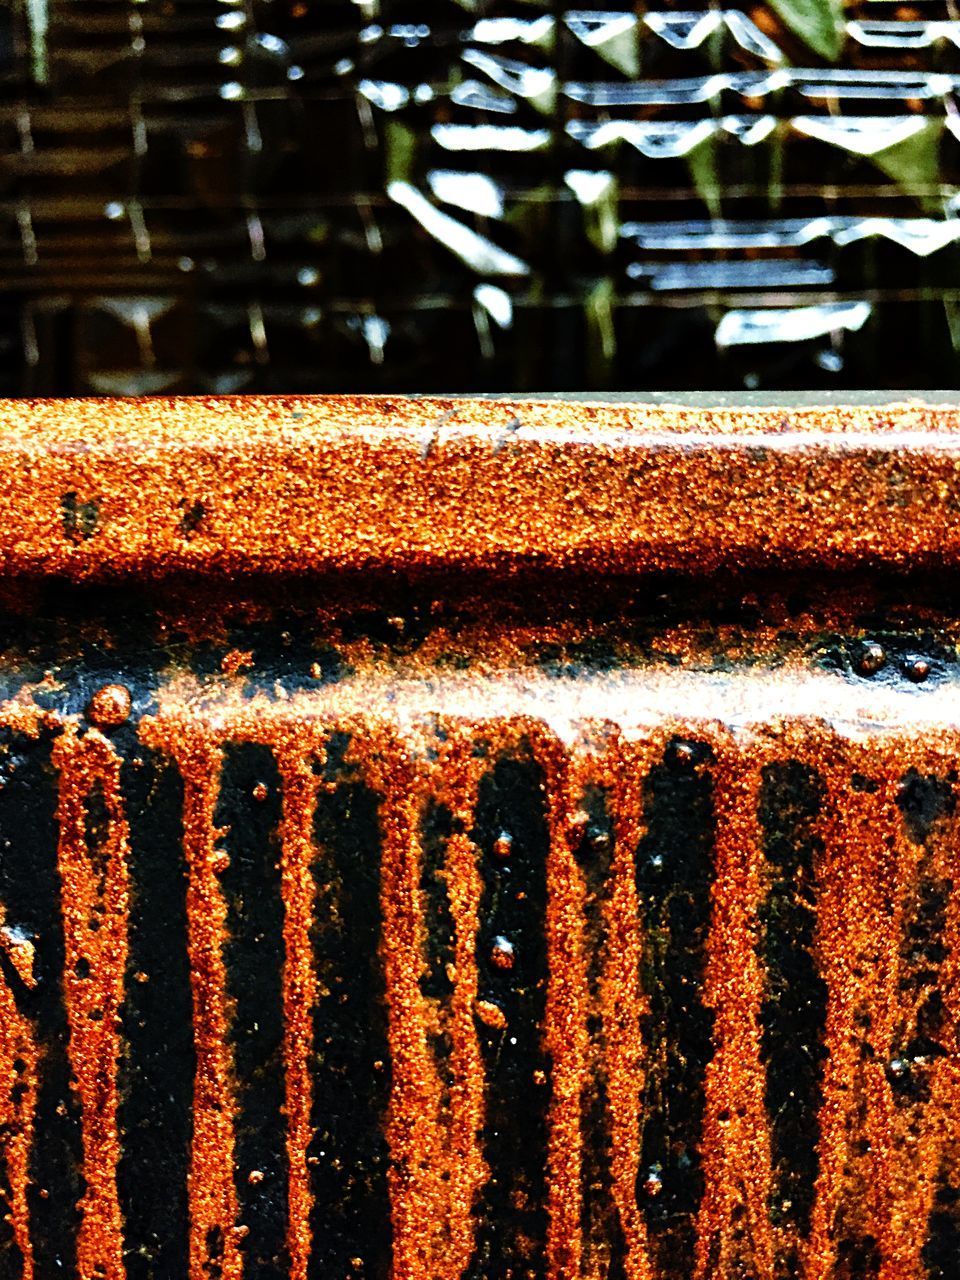 communication, text, no people, close-up, day, outdoors, textured, pattern, rusty